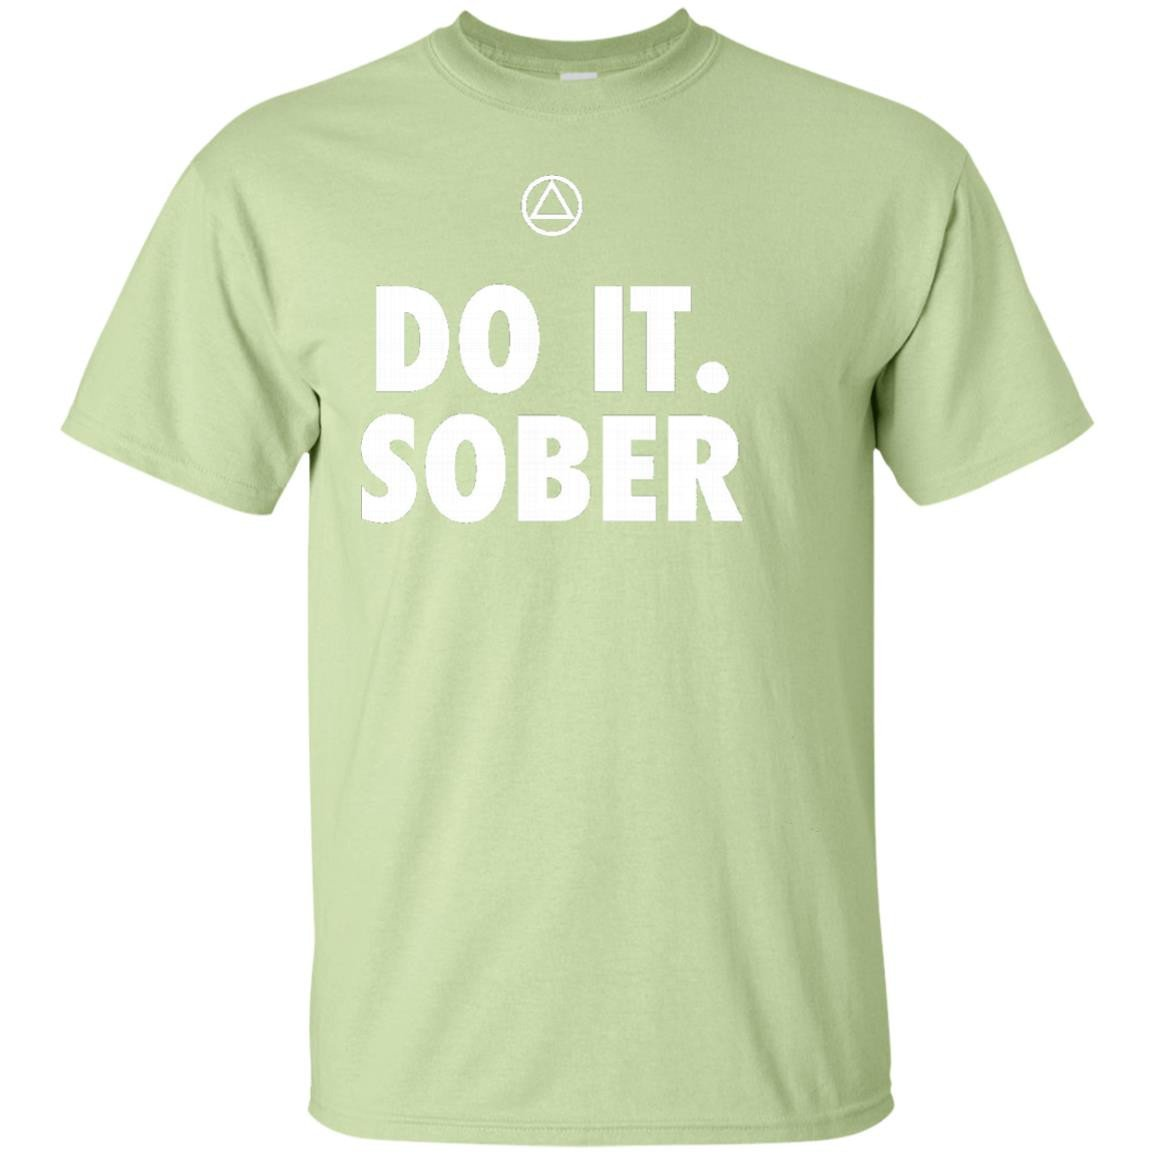 'Do It. Sober' - Funny AA Recovery T-Shirt